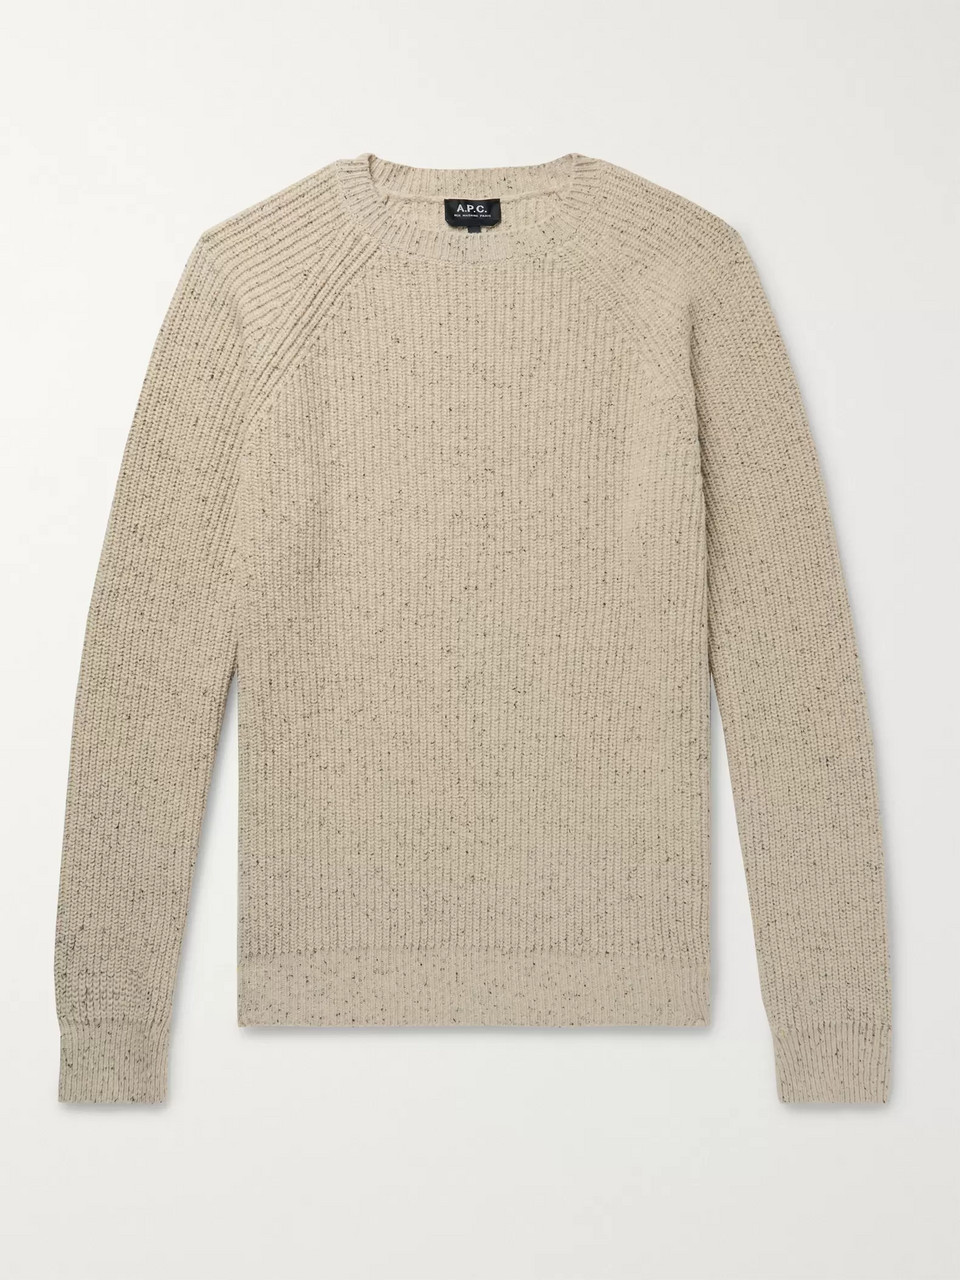 A.P.C. Ribbed Knitted Sweater